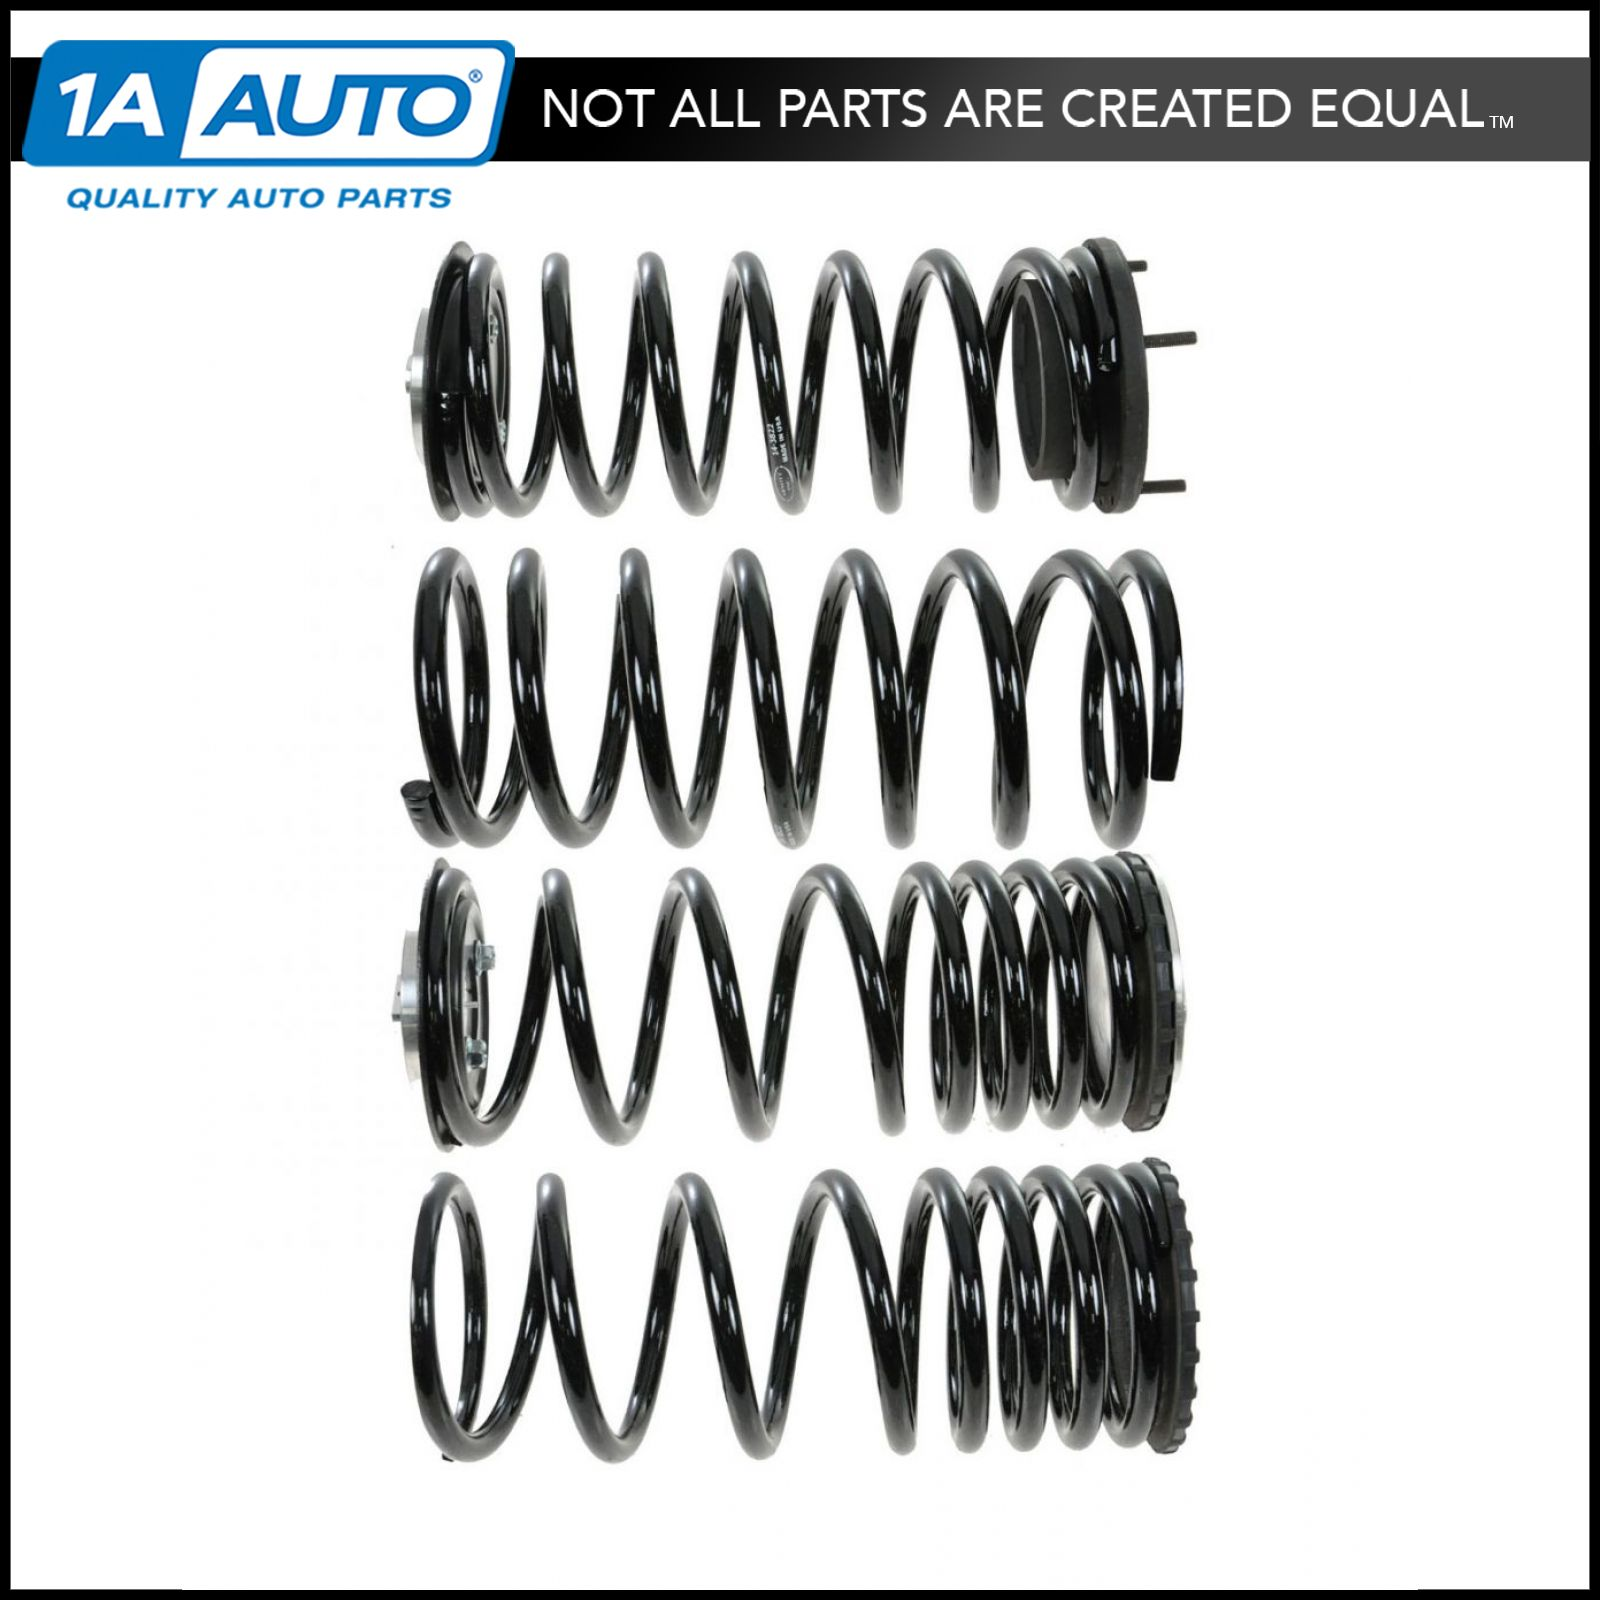 Arnott C Air Suspension Coil Spring Conversion Kit